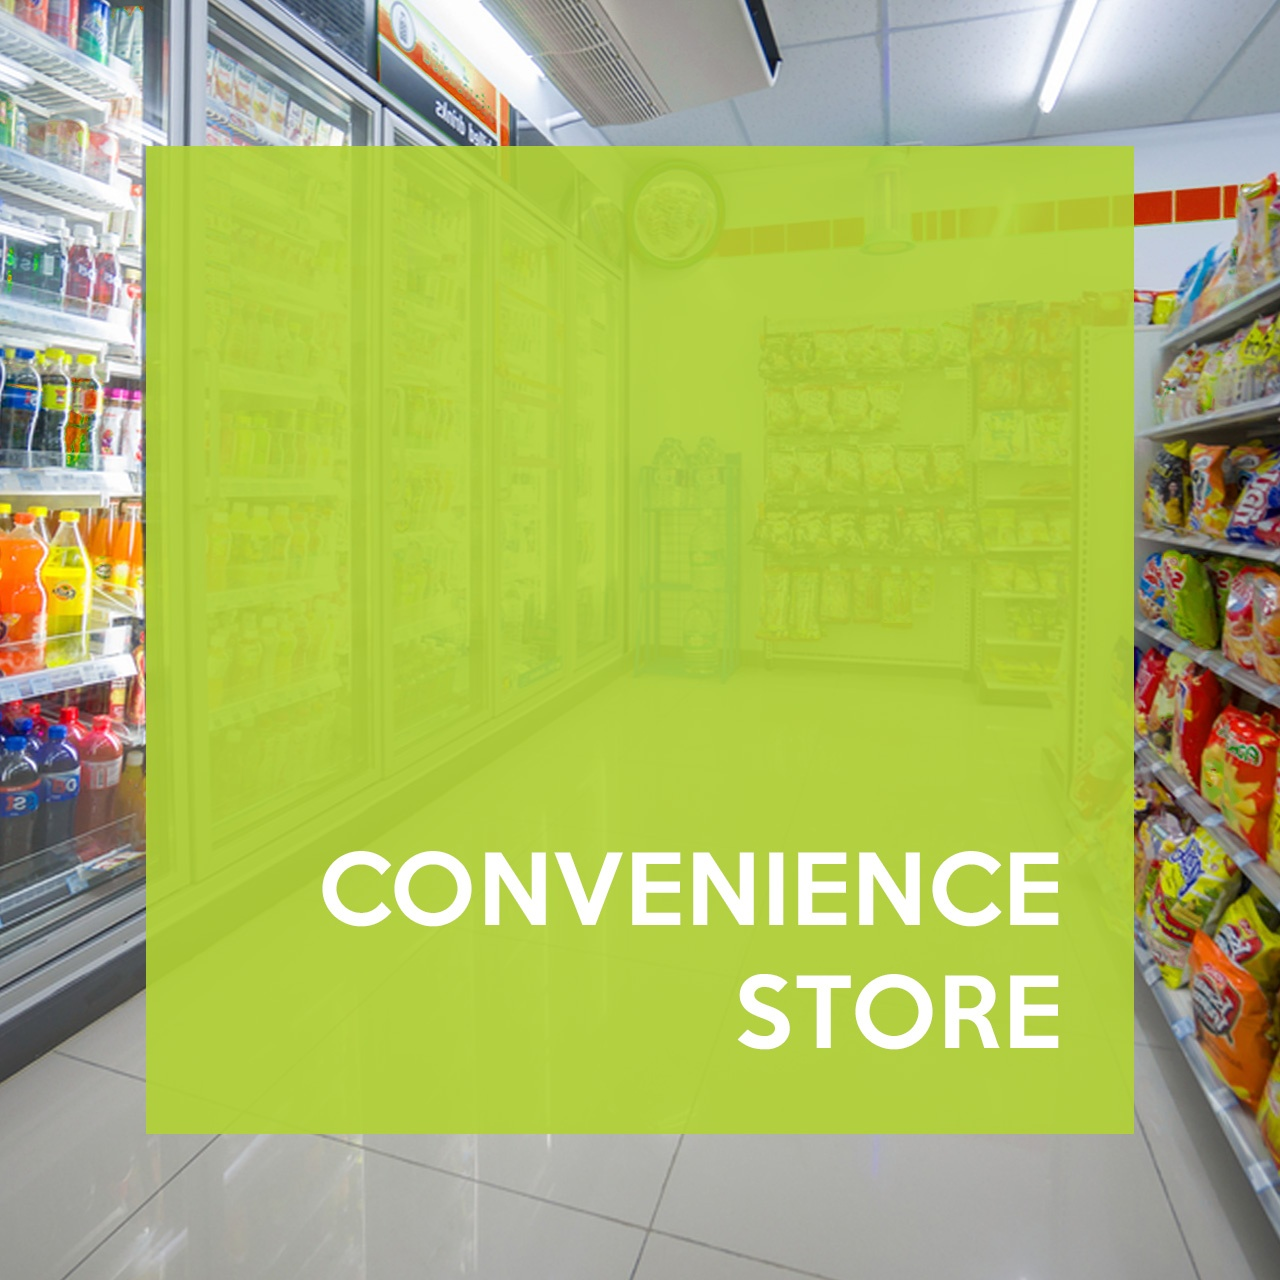 AMI_COMMERCIAL__conv_store_-_015.jpg